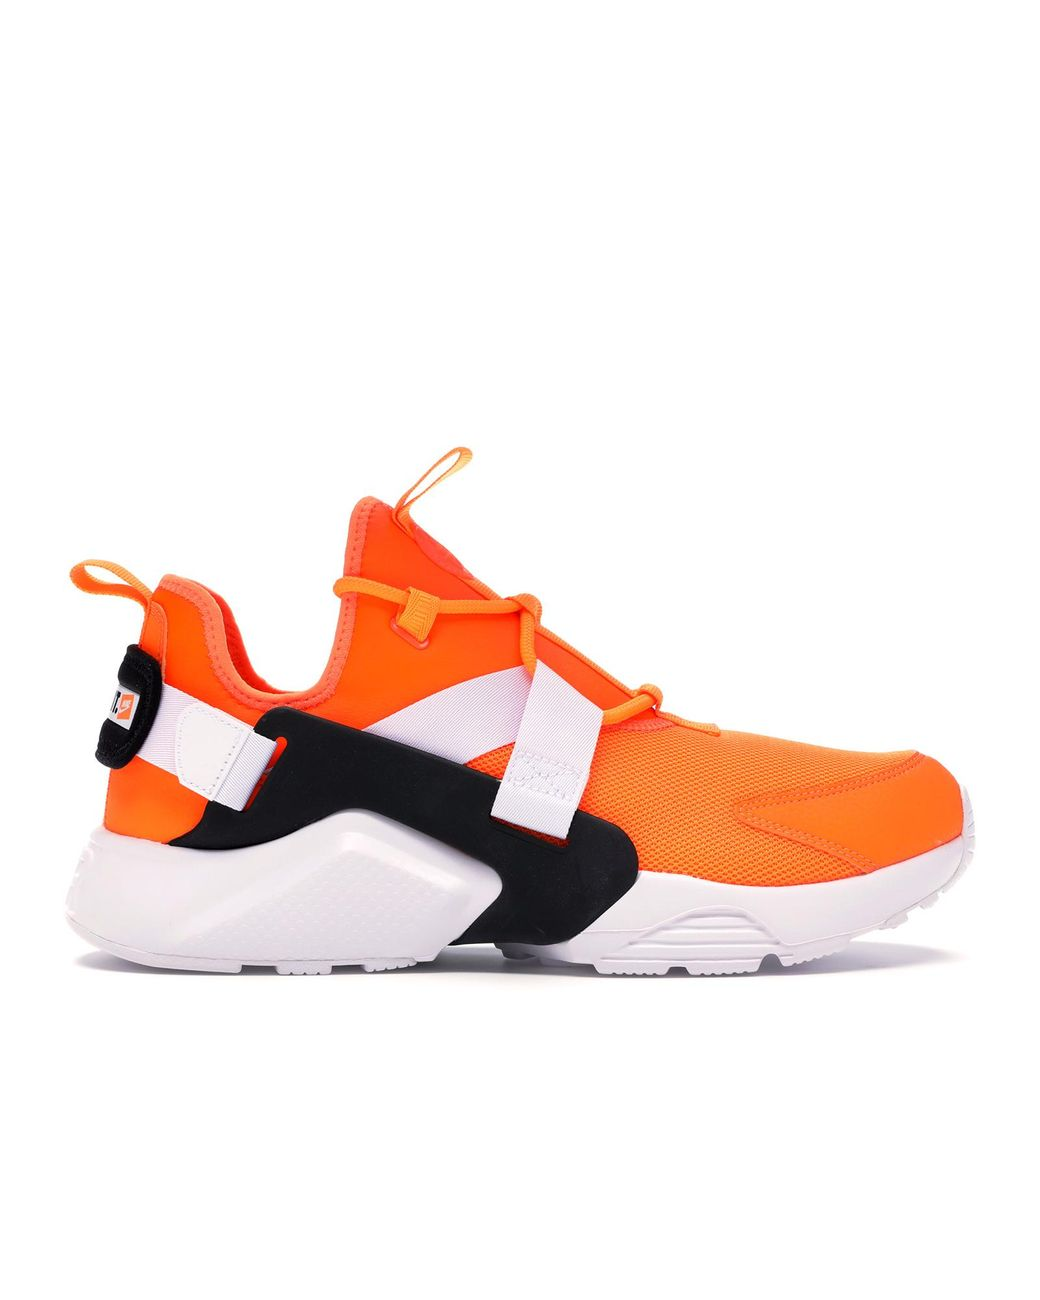 Air Huarache City Low Just Do It Pack Orange (w)